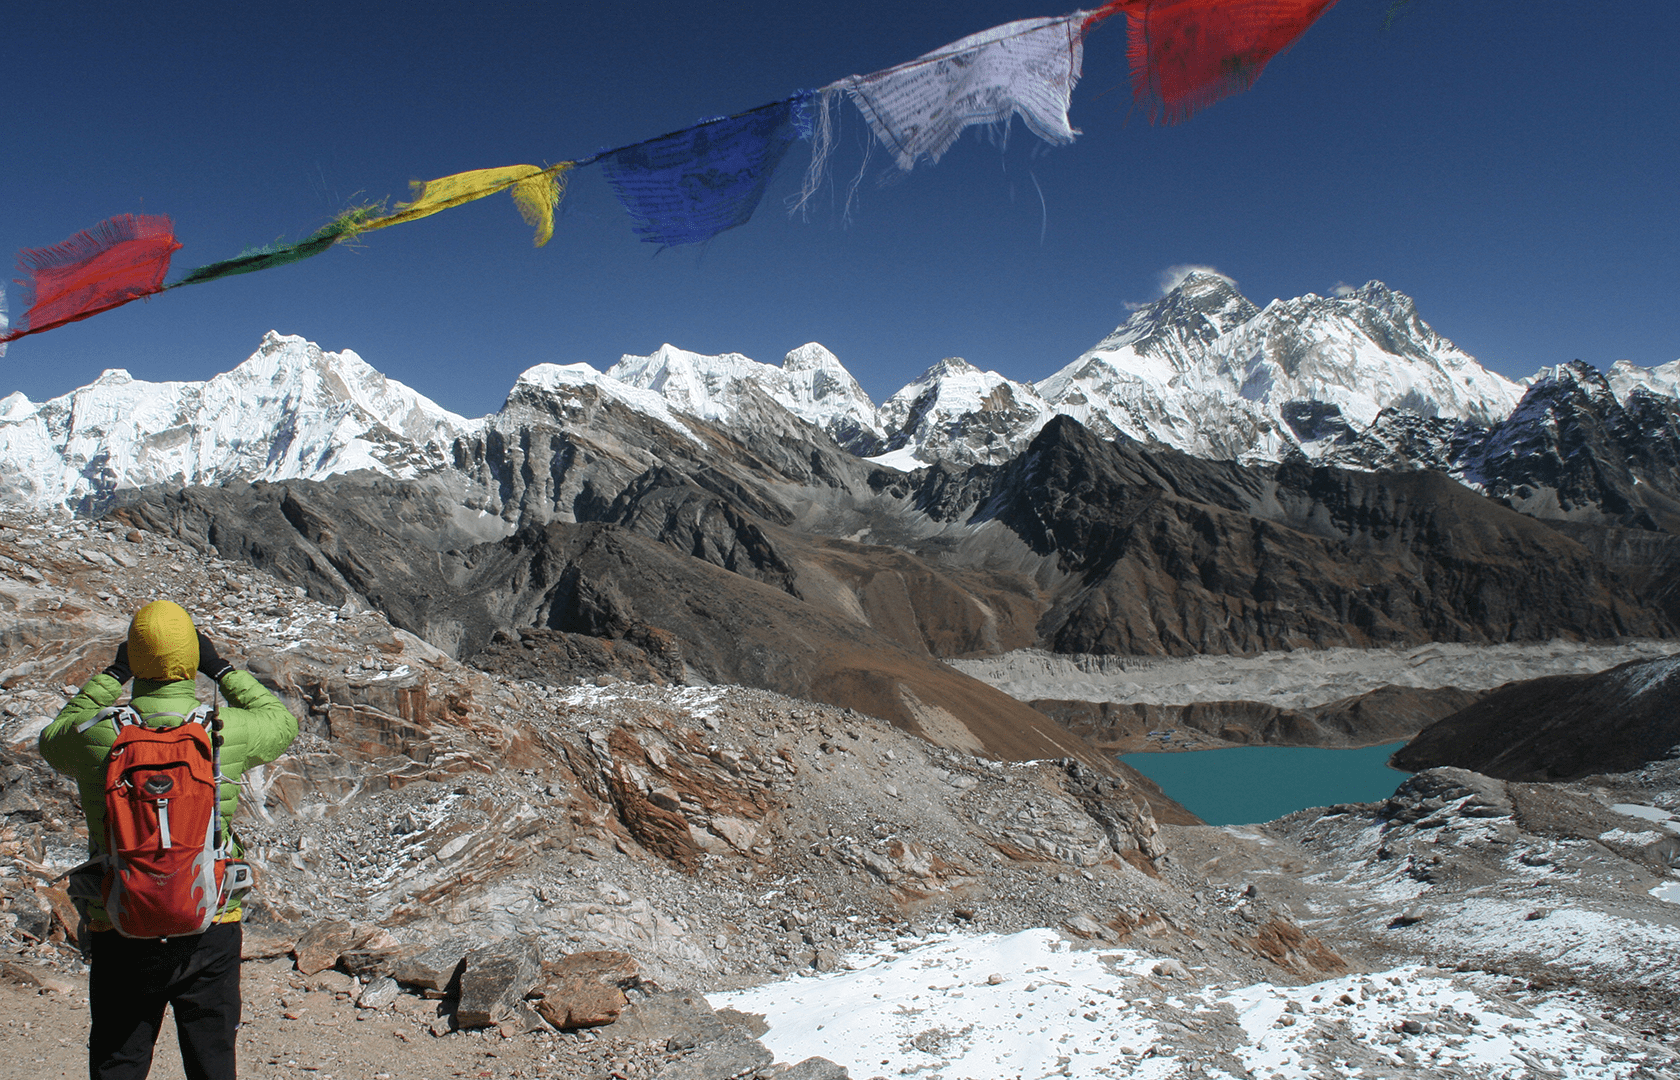 Gokyo Renjo-La Pass Trekking is one of the challenging trekking in Everest Region which lets you go to Everest Base Camp, escaping from the mainstream trekking trail. This trekking experience will give you an exclusive experience in your journey to the Everest Base Camp. Gokyo Renjo-La Pass Trekking has its attractive features on its way, away from the crowd.